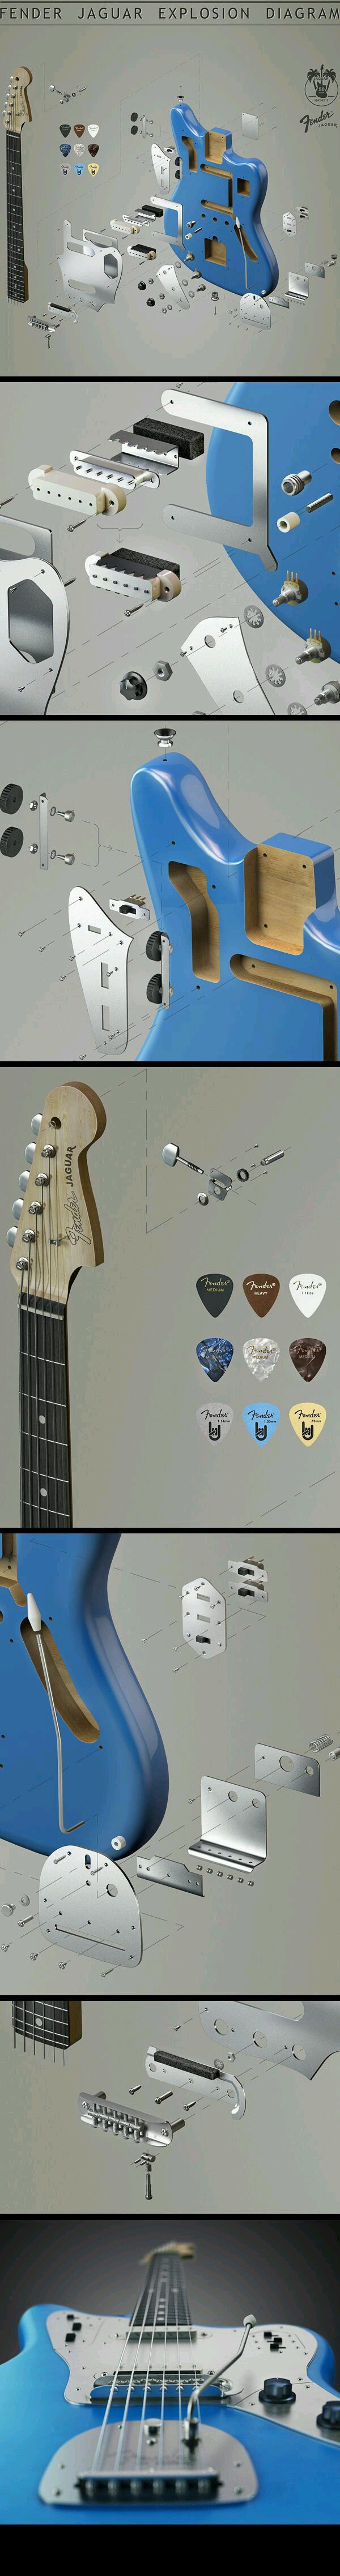 Fender Jaguar - Exploded View.  Awesome!